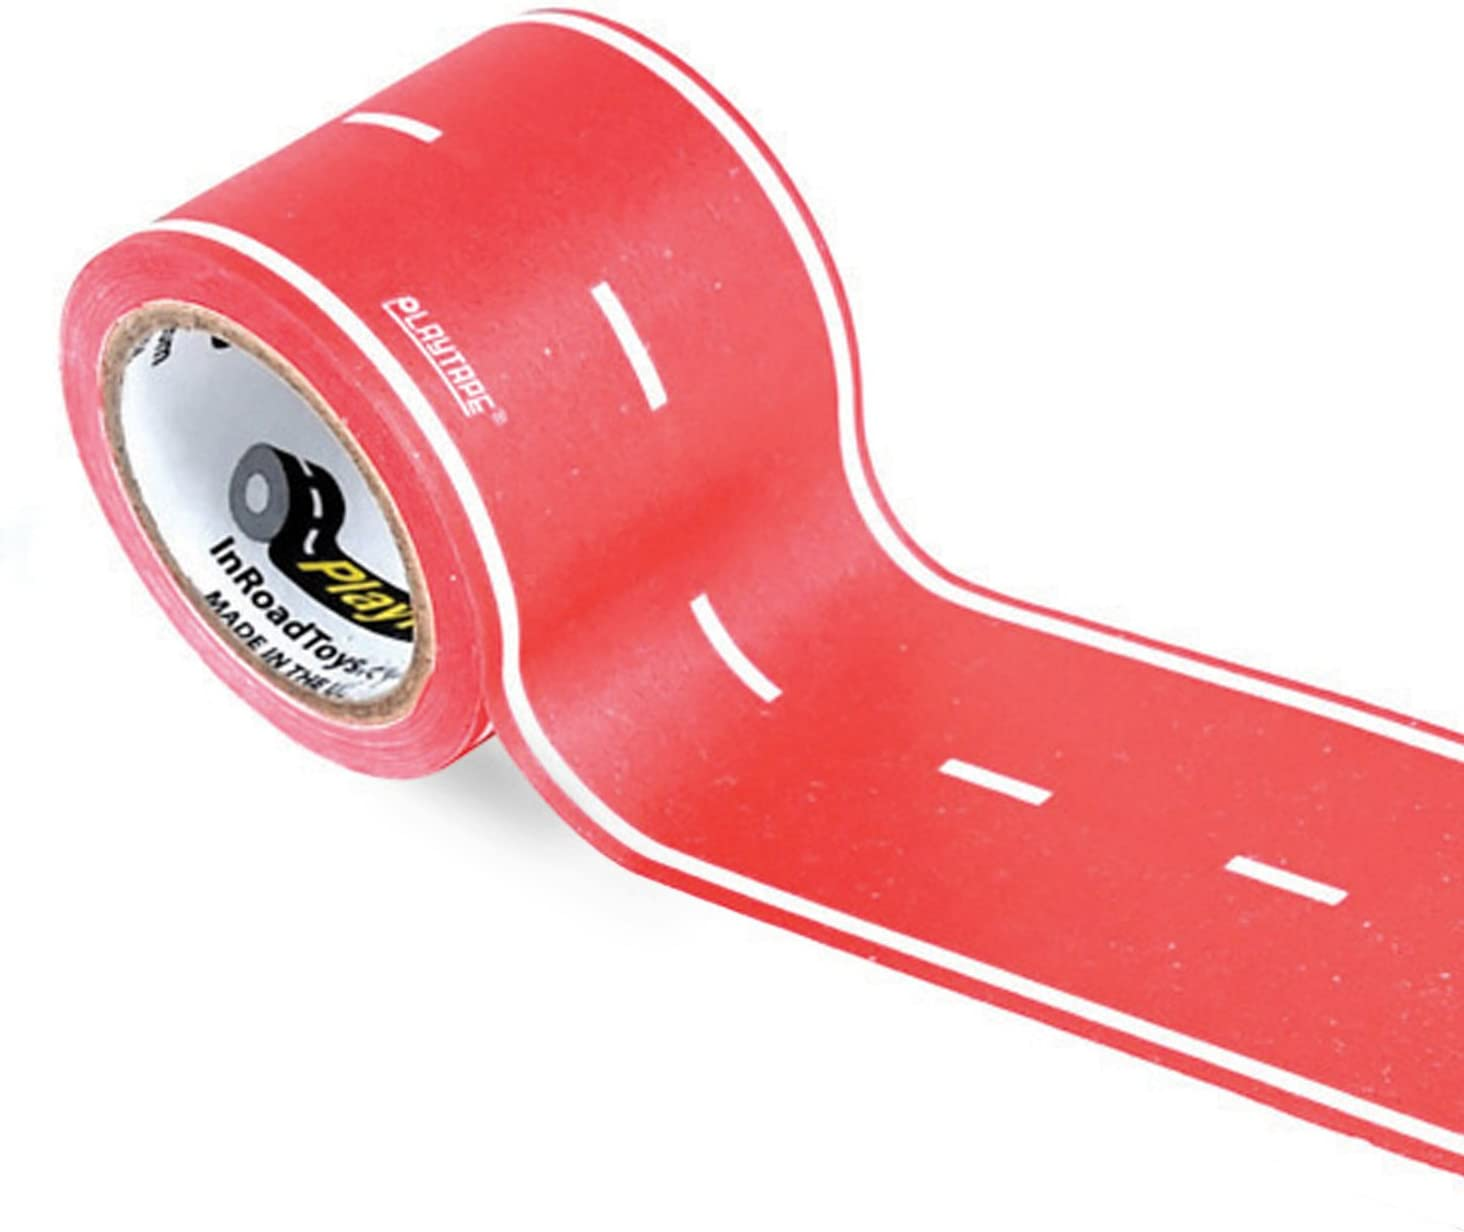 Toy Car Amersumer 4 Rolls Road Tape 66 Ft Black Toy Road Track Sticker Rolls Boat 4 Packs Traffic Sign Stickers Truck Stickers Toy Railroad Tape Play Vehicle Supplies and Toy Birthday Gifts